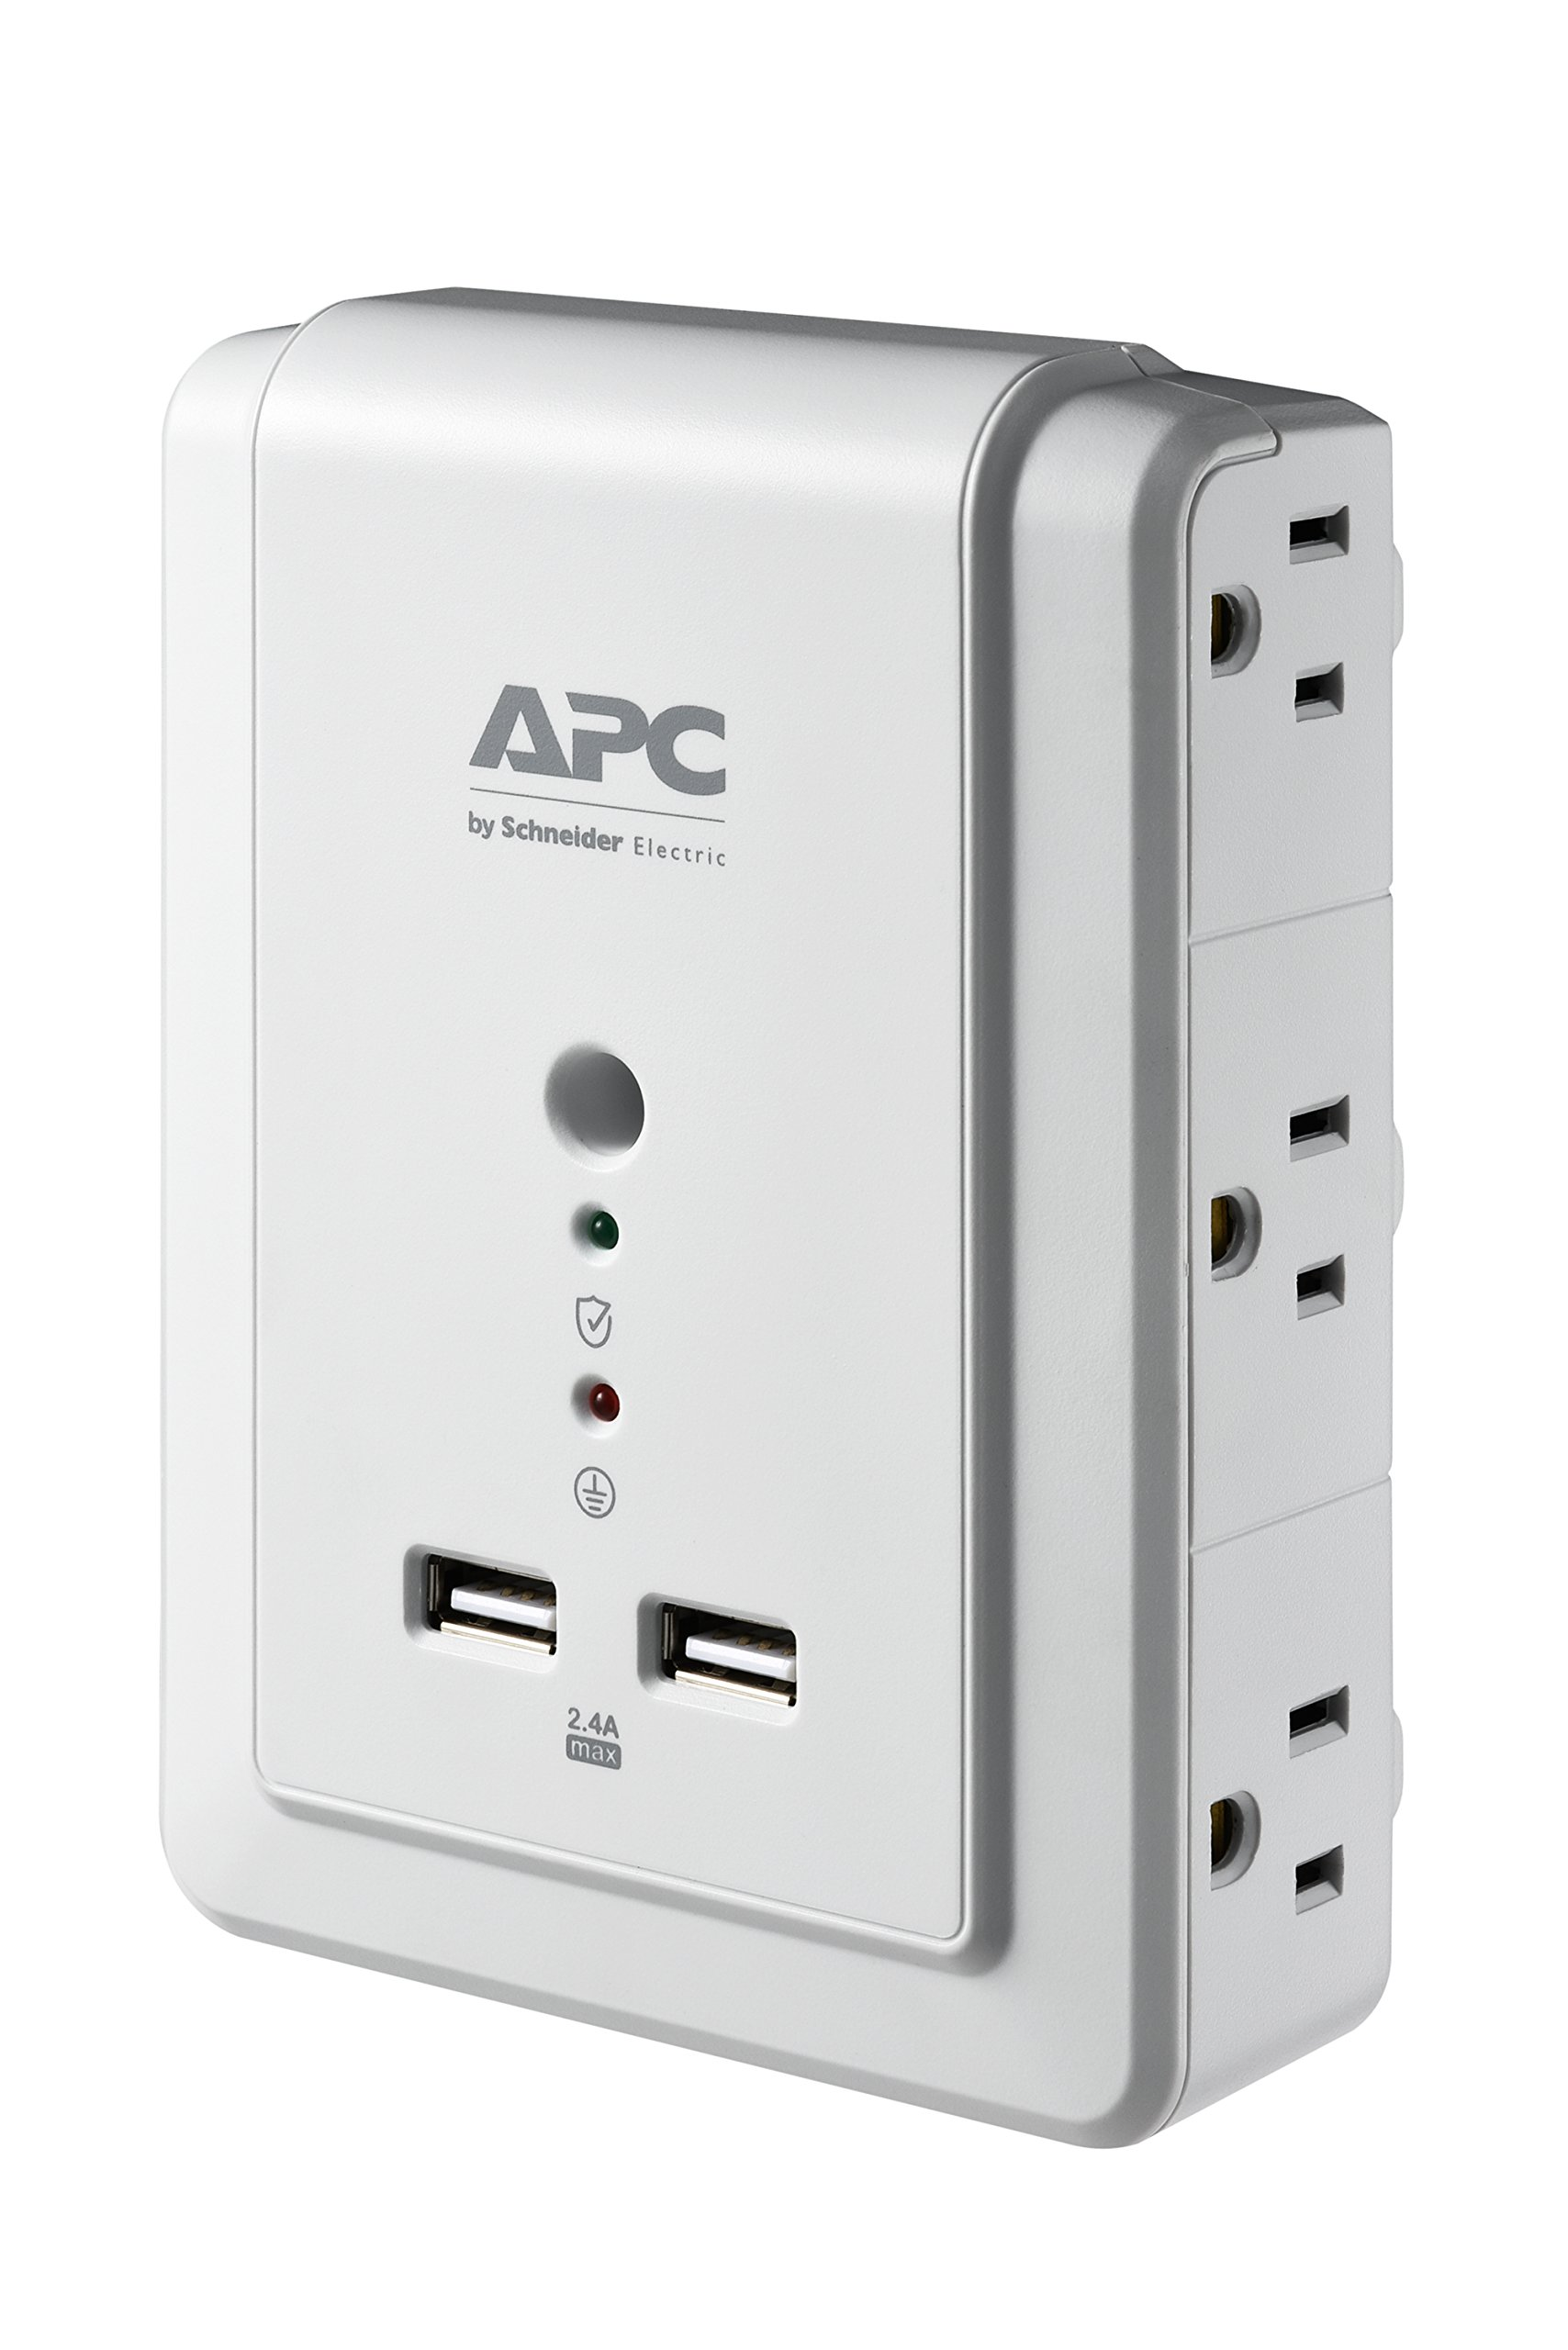 APC 6-Outlet Wall Surge Protector with USB Charging Ports, SurgeArrest Essential (P6WU2) by APC